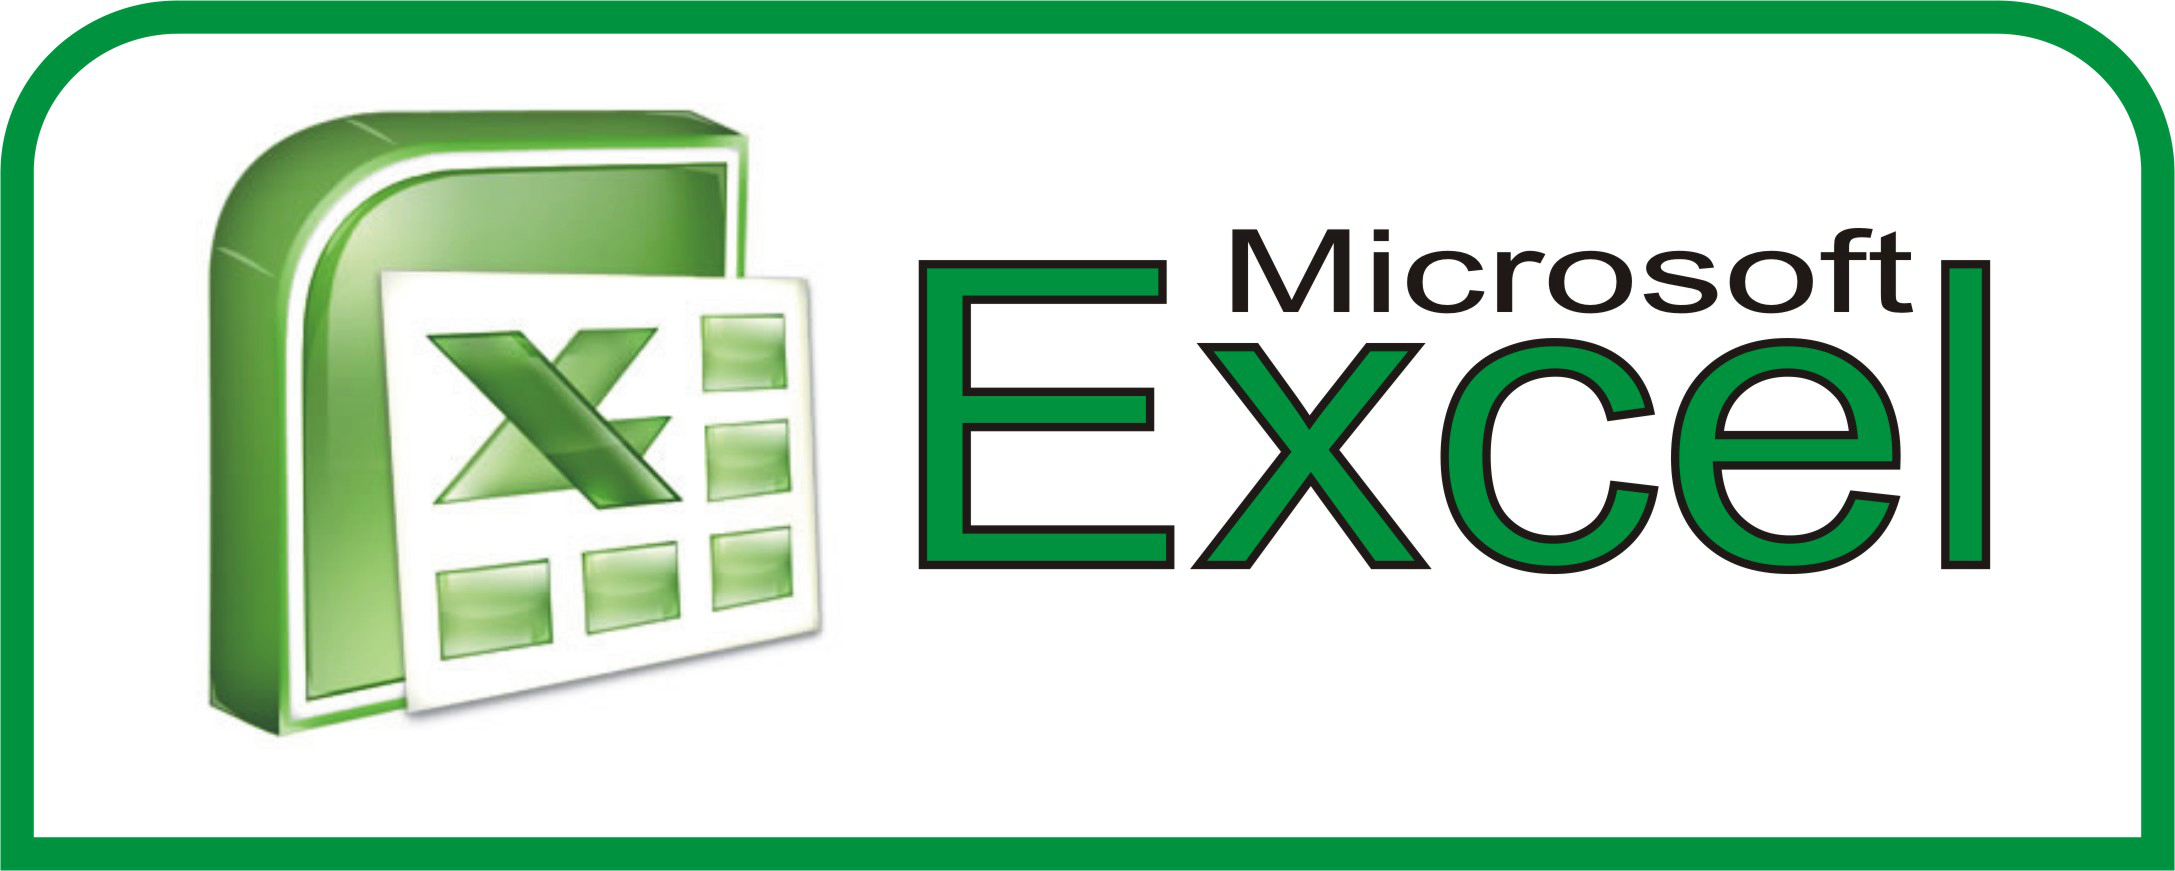 Ediblewildsus  Pretty  Excel Shortcuts You Probably Didnt Know About  Techdissected With Great Powerpivot Excel Download Besides Unlock File Excel Furthermore Protected Excel Sheet Unprotect With Easy On The Eye Box And Whisker Plot Excel  Also Excel Remove Hyperlinks In Addition Speedometer Excel  And Online Excel Certification As Well As Excel Table Formula Additionally Vba Load Excel File From Techdissectedcom With Ediblewildsus  Great  Excel Shortcuts You Probably Didnt Know About  Techdissected With Easy On The Eye Powerpivot Excel Download Besides Unlock File Excel Furthermore Protected Excel Sheet Unprotect And Pretty Box And Whisker Plot Excel  Also Excel Remove Hyperlinks In Addition Speedometer Excel  From Techdissectedcom